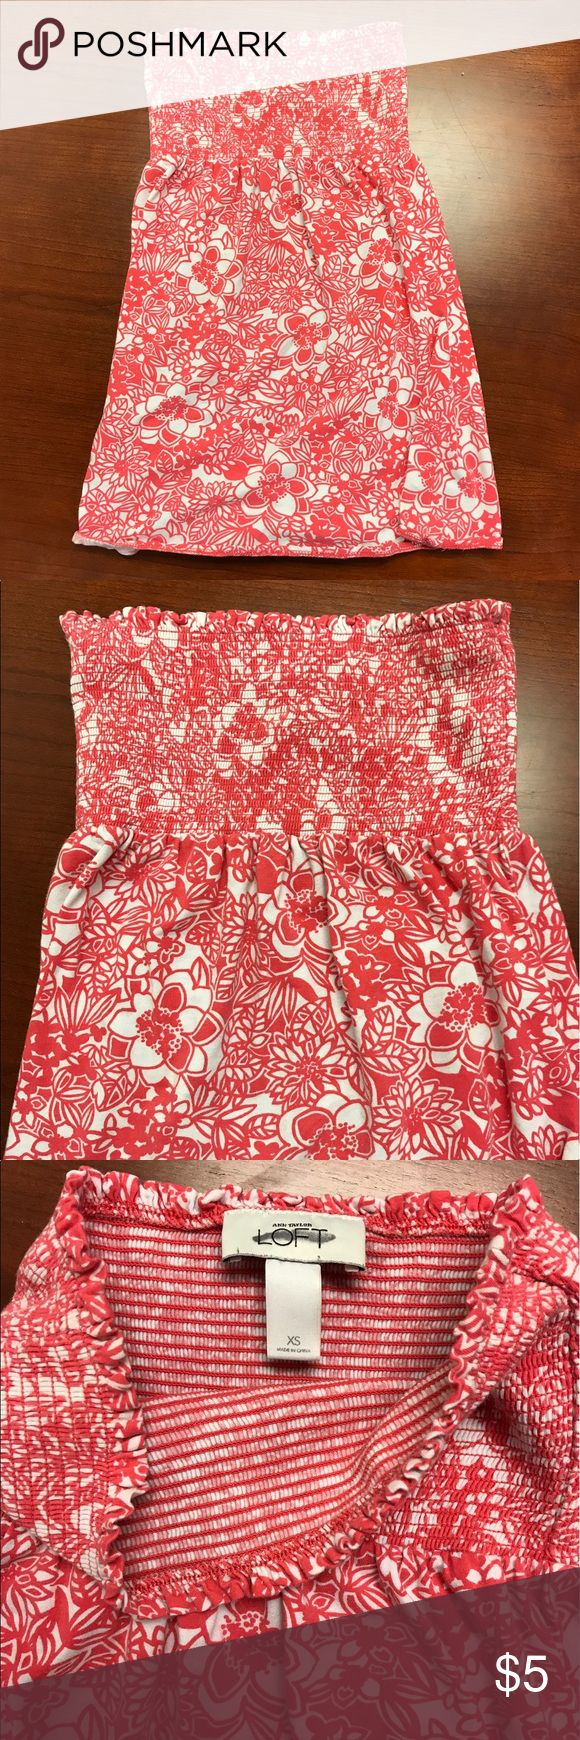 Ann Taylor Loft Floral Coral and White Tube Top XS Ann Taylor Loft Floral Coral and White Tube Top XS. Looks more red in photos but 100% coral! Good condition. Stretchy material. LOFT Tops